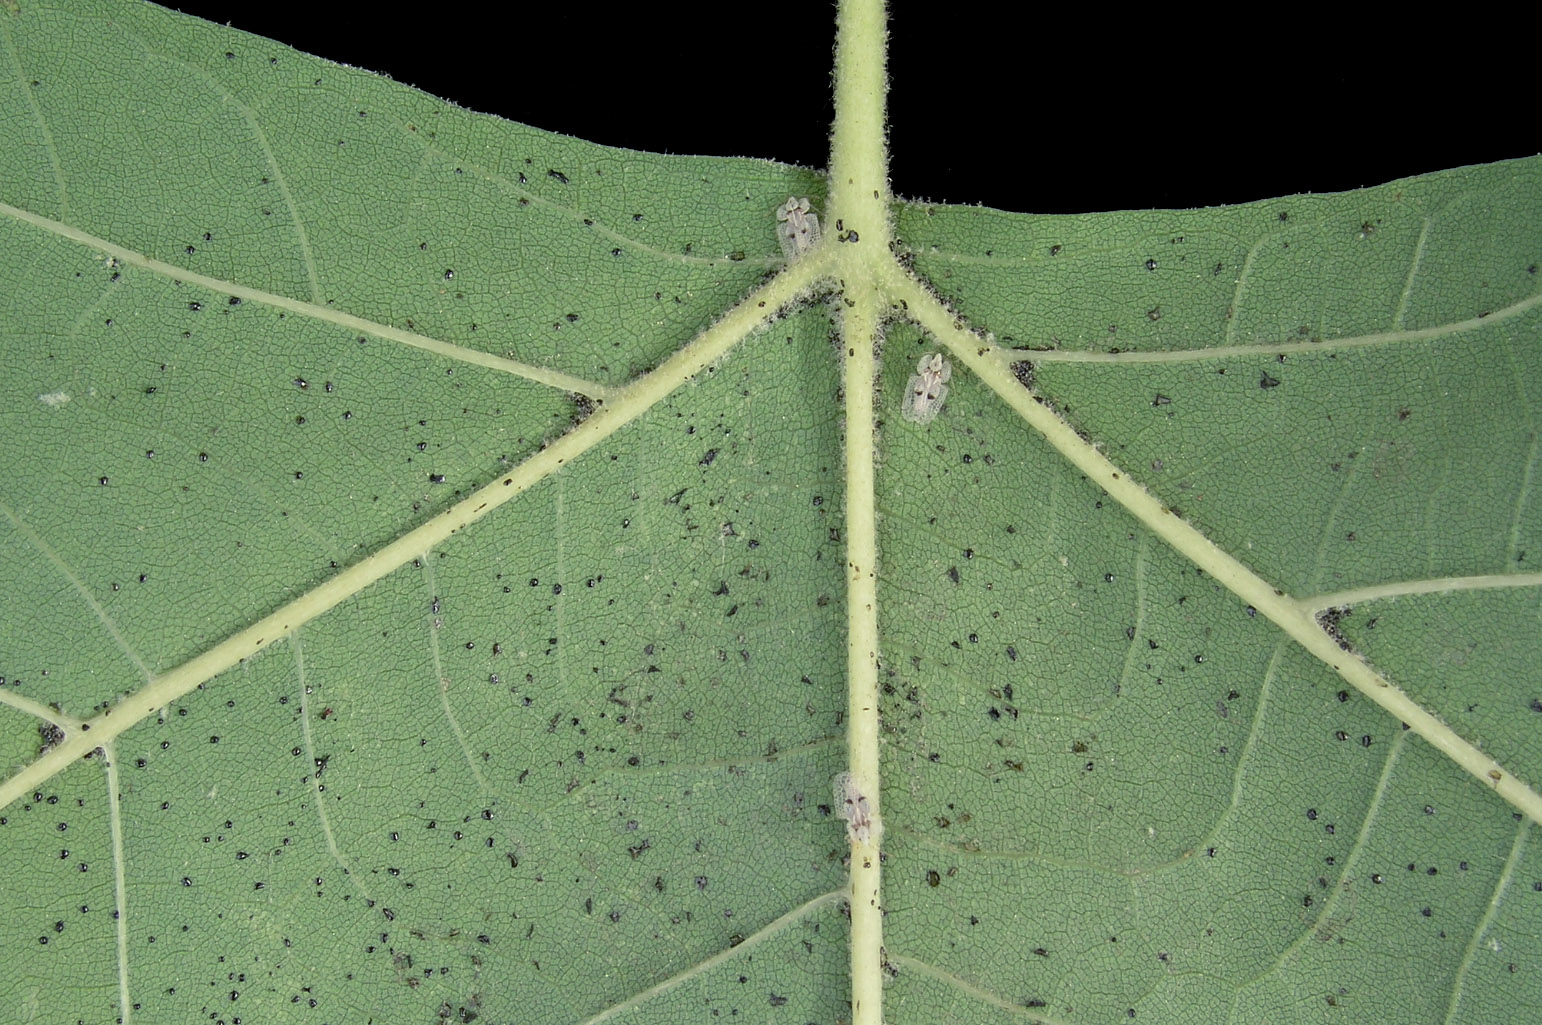 Detailed view of the abaxial side of a leaf with adult specimens and eggs of <span class=cursiva>Corythucha ciliata</span> (sycamore lace bug)